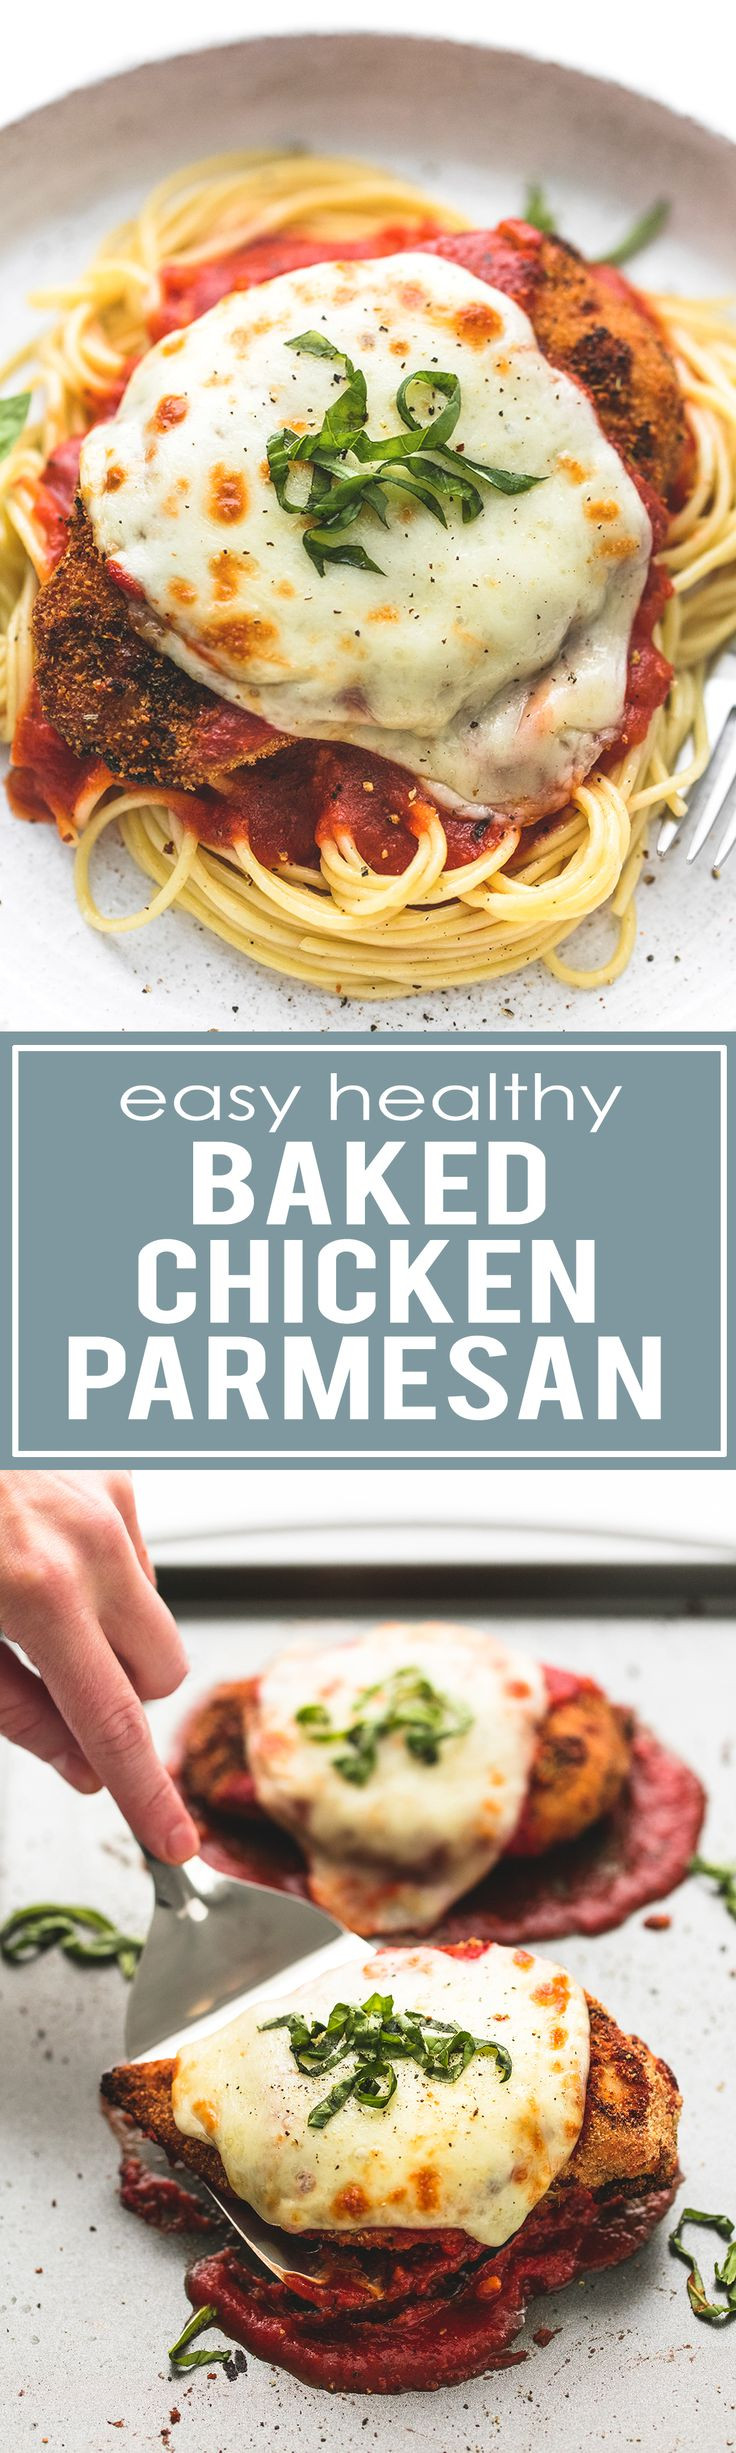 Easy Baked Chicken Parmesan  Easy Healthy Baked Chicken Parmesan